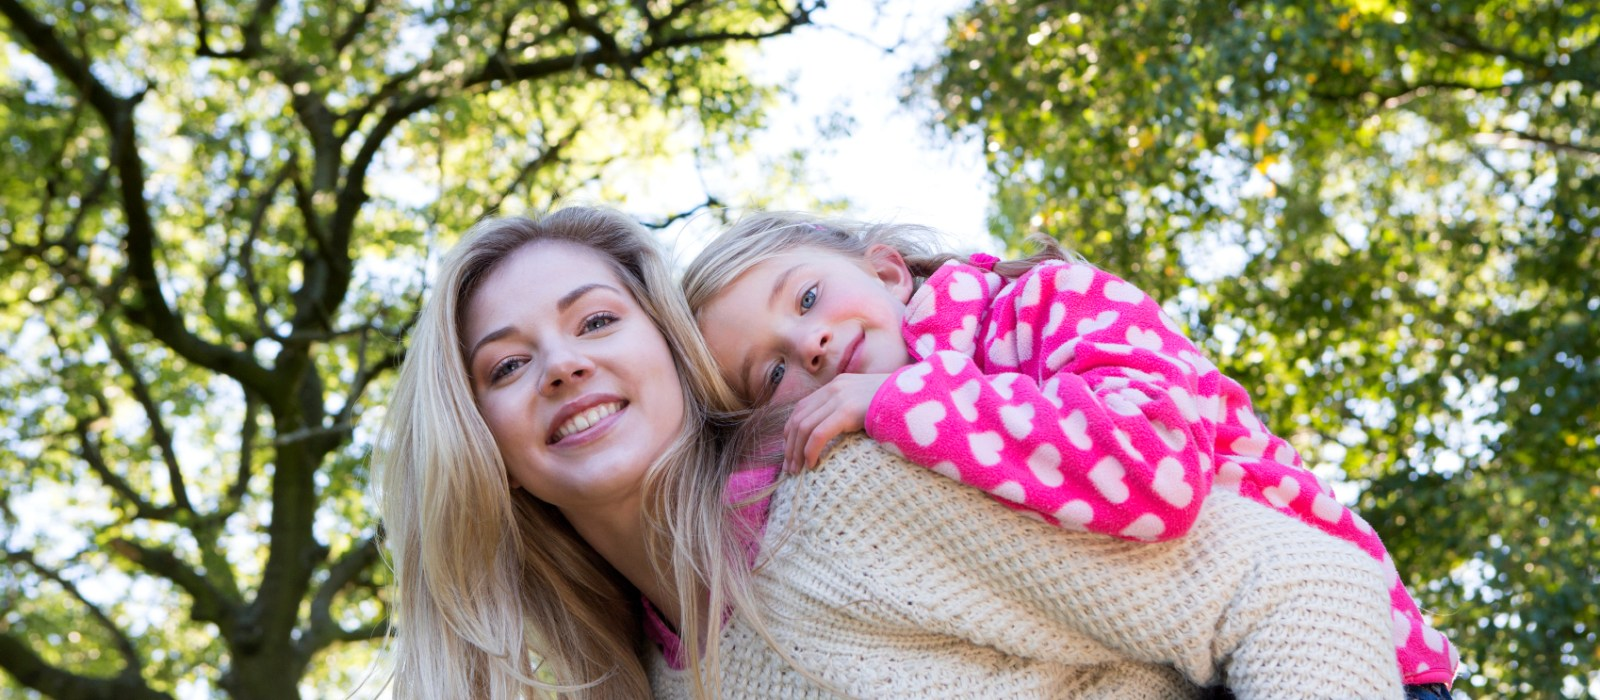 Lori Calabrese MD is a Connecticut Psychiatrist with innovative psychiatric treatments for moms like this one, and for you.